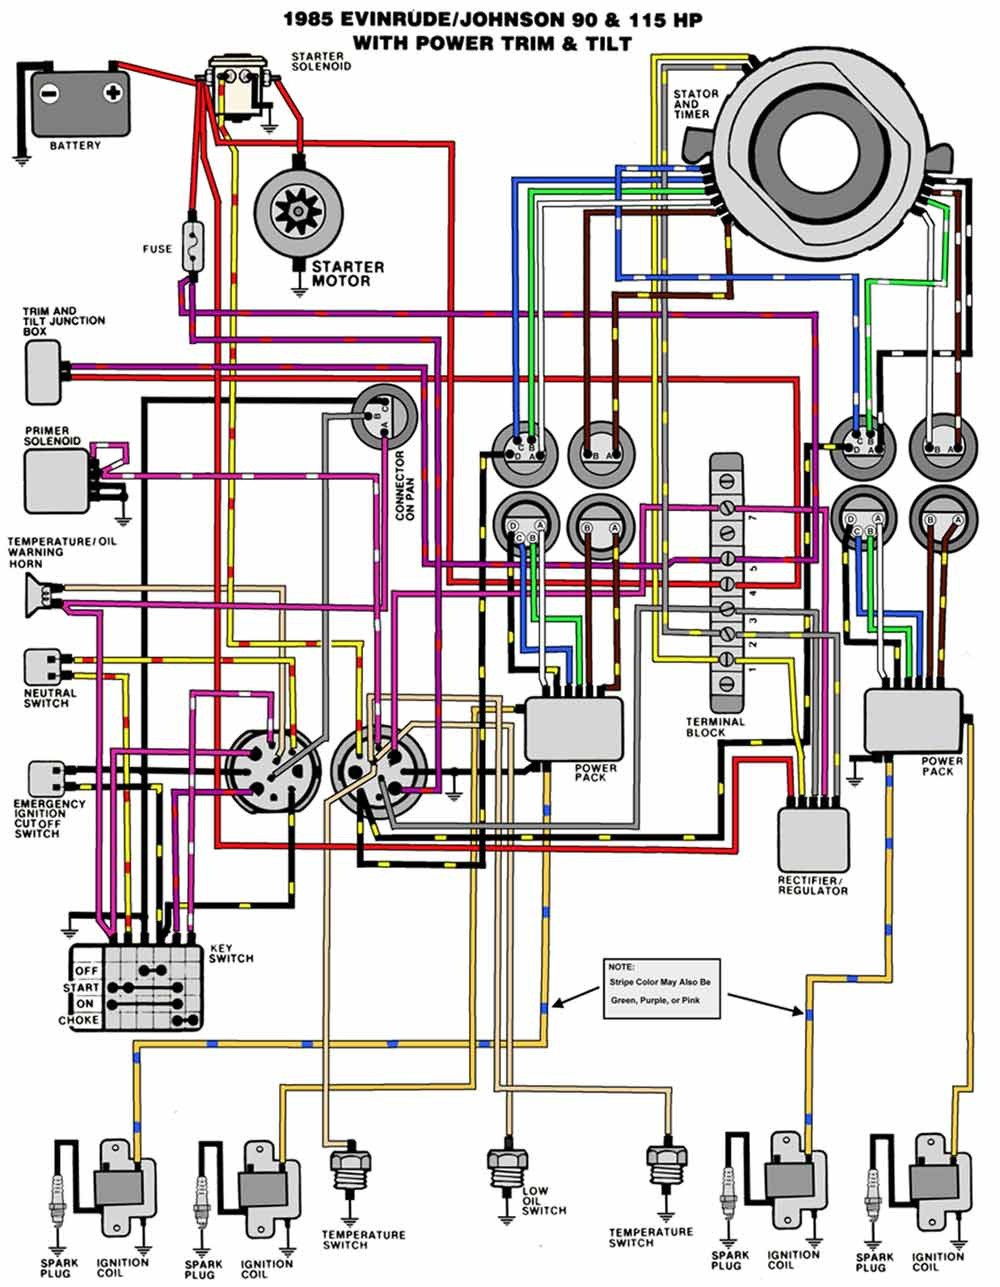 Mercury Outboard Wiring Diagram Schematic Inspirational Car 86 Mercury 35  Hp Wiring Diagram Mastertech Marine Evinrude